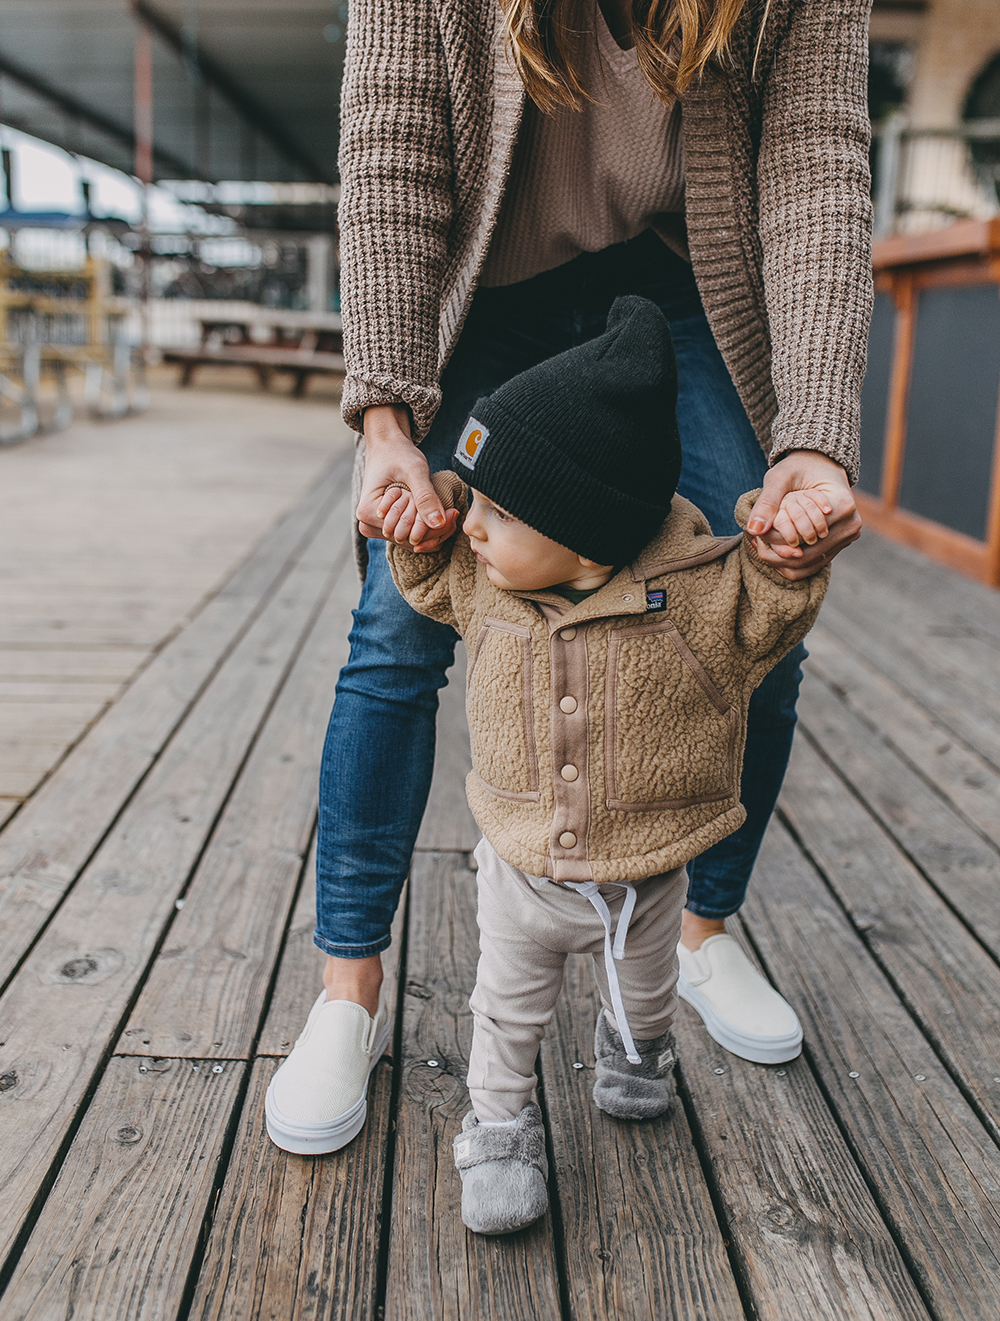 livvyland-blog-olivia-watson-austin-texas-lifestyle-motherhood-blogger-mozarts-coffee-patagonia-infant-retro-pile-jacket-sweater-1